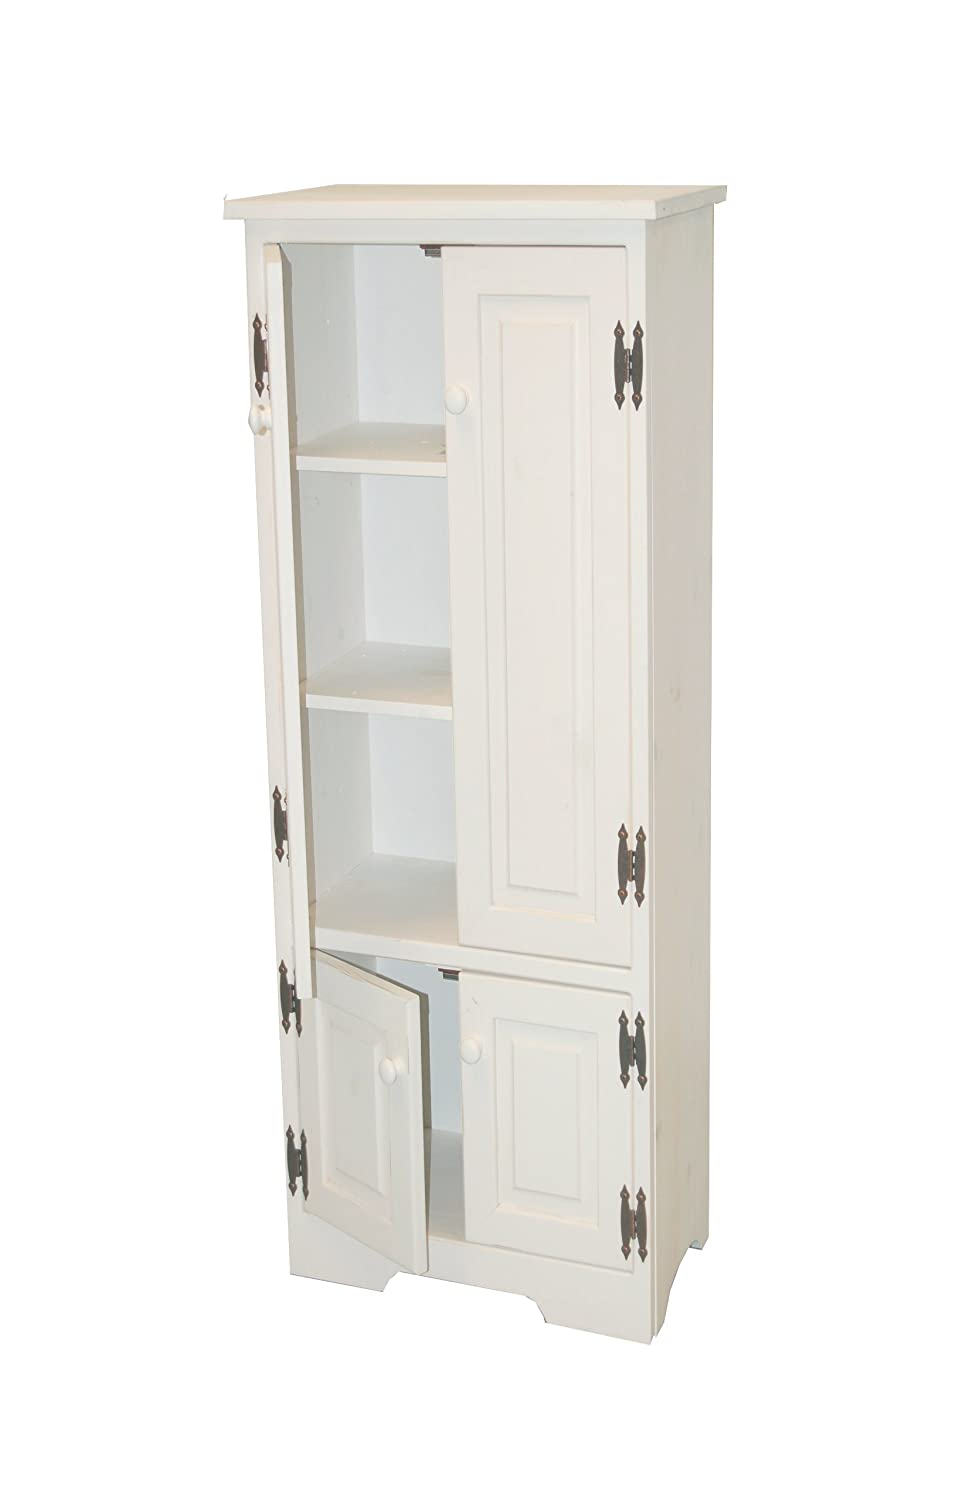 cabinets more larder render height broom views cremahi tall gloss cupboard trade cabinet doors high